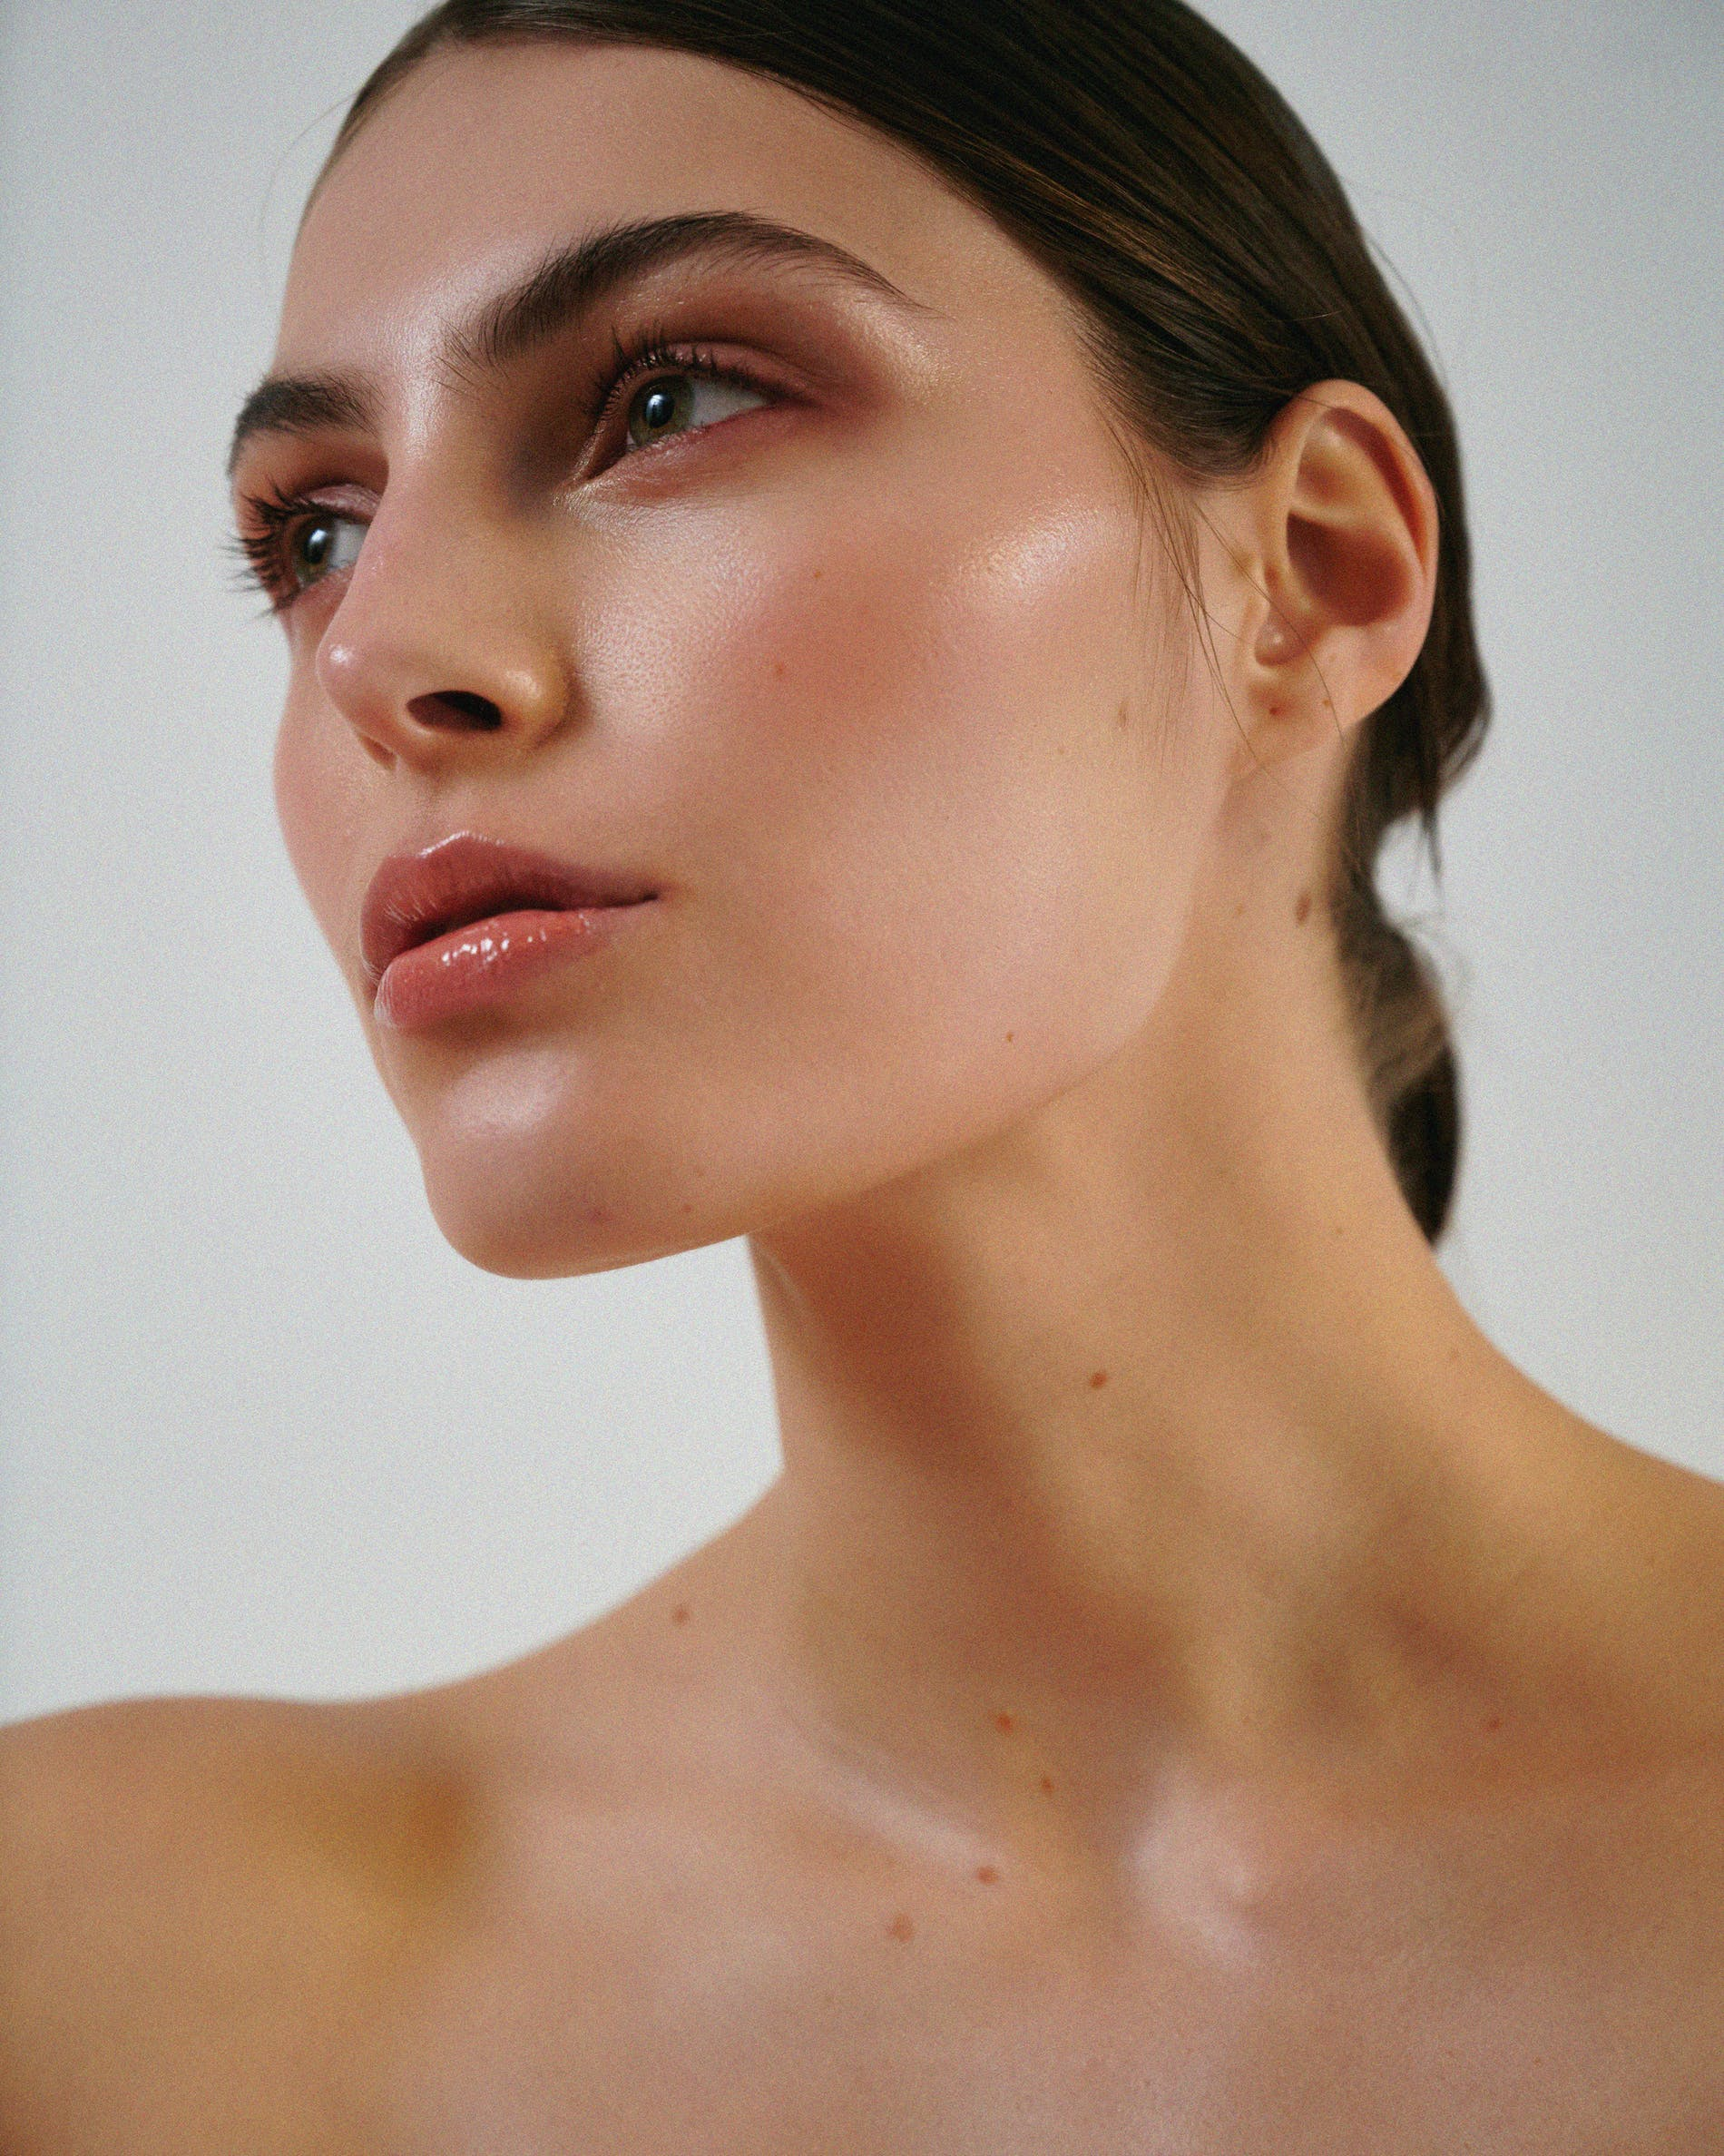 What to Know About Dermaplaning - Skincare Facial Shaving Dermaplane Tools